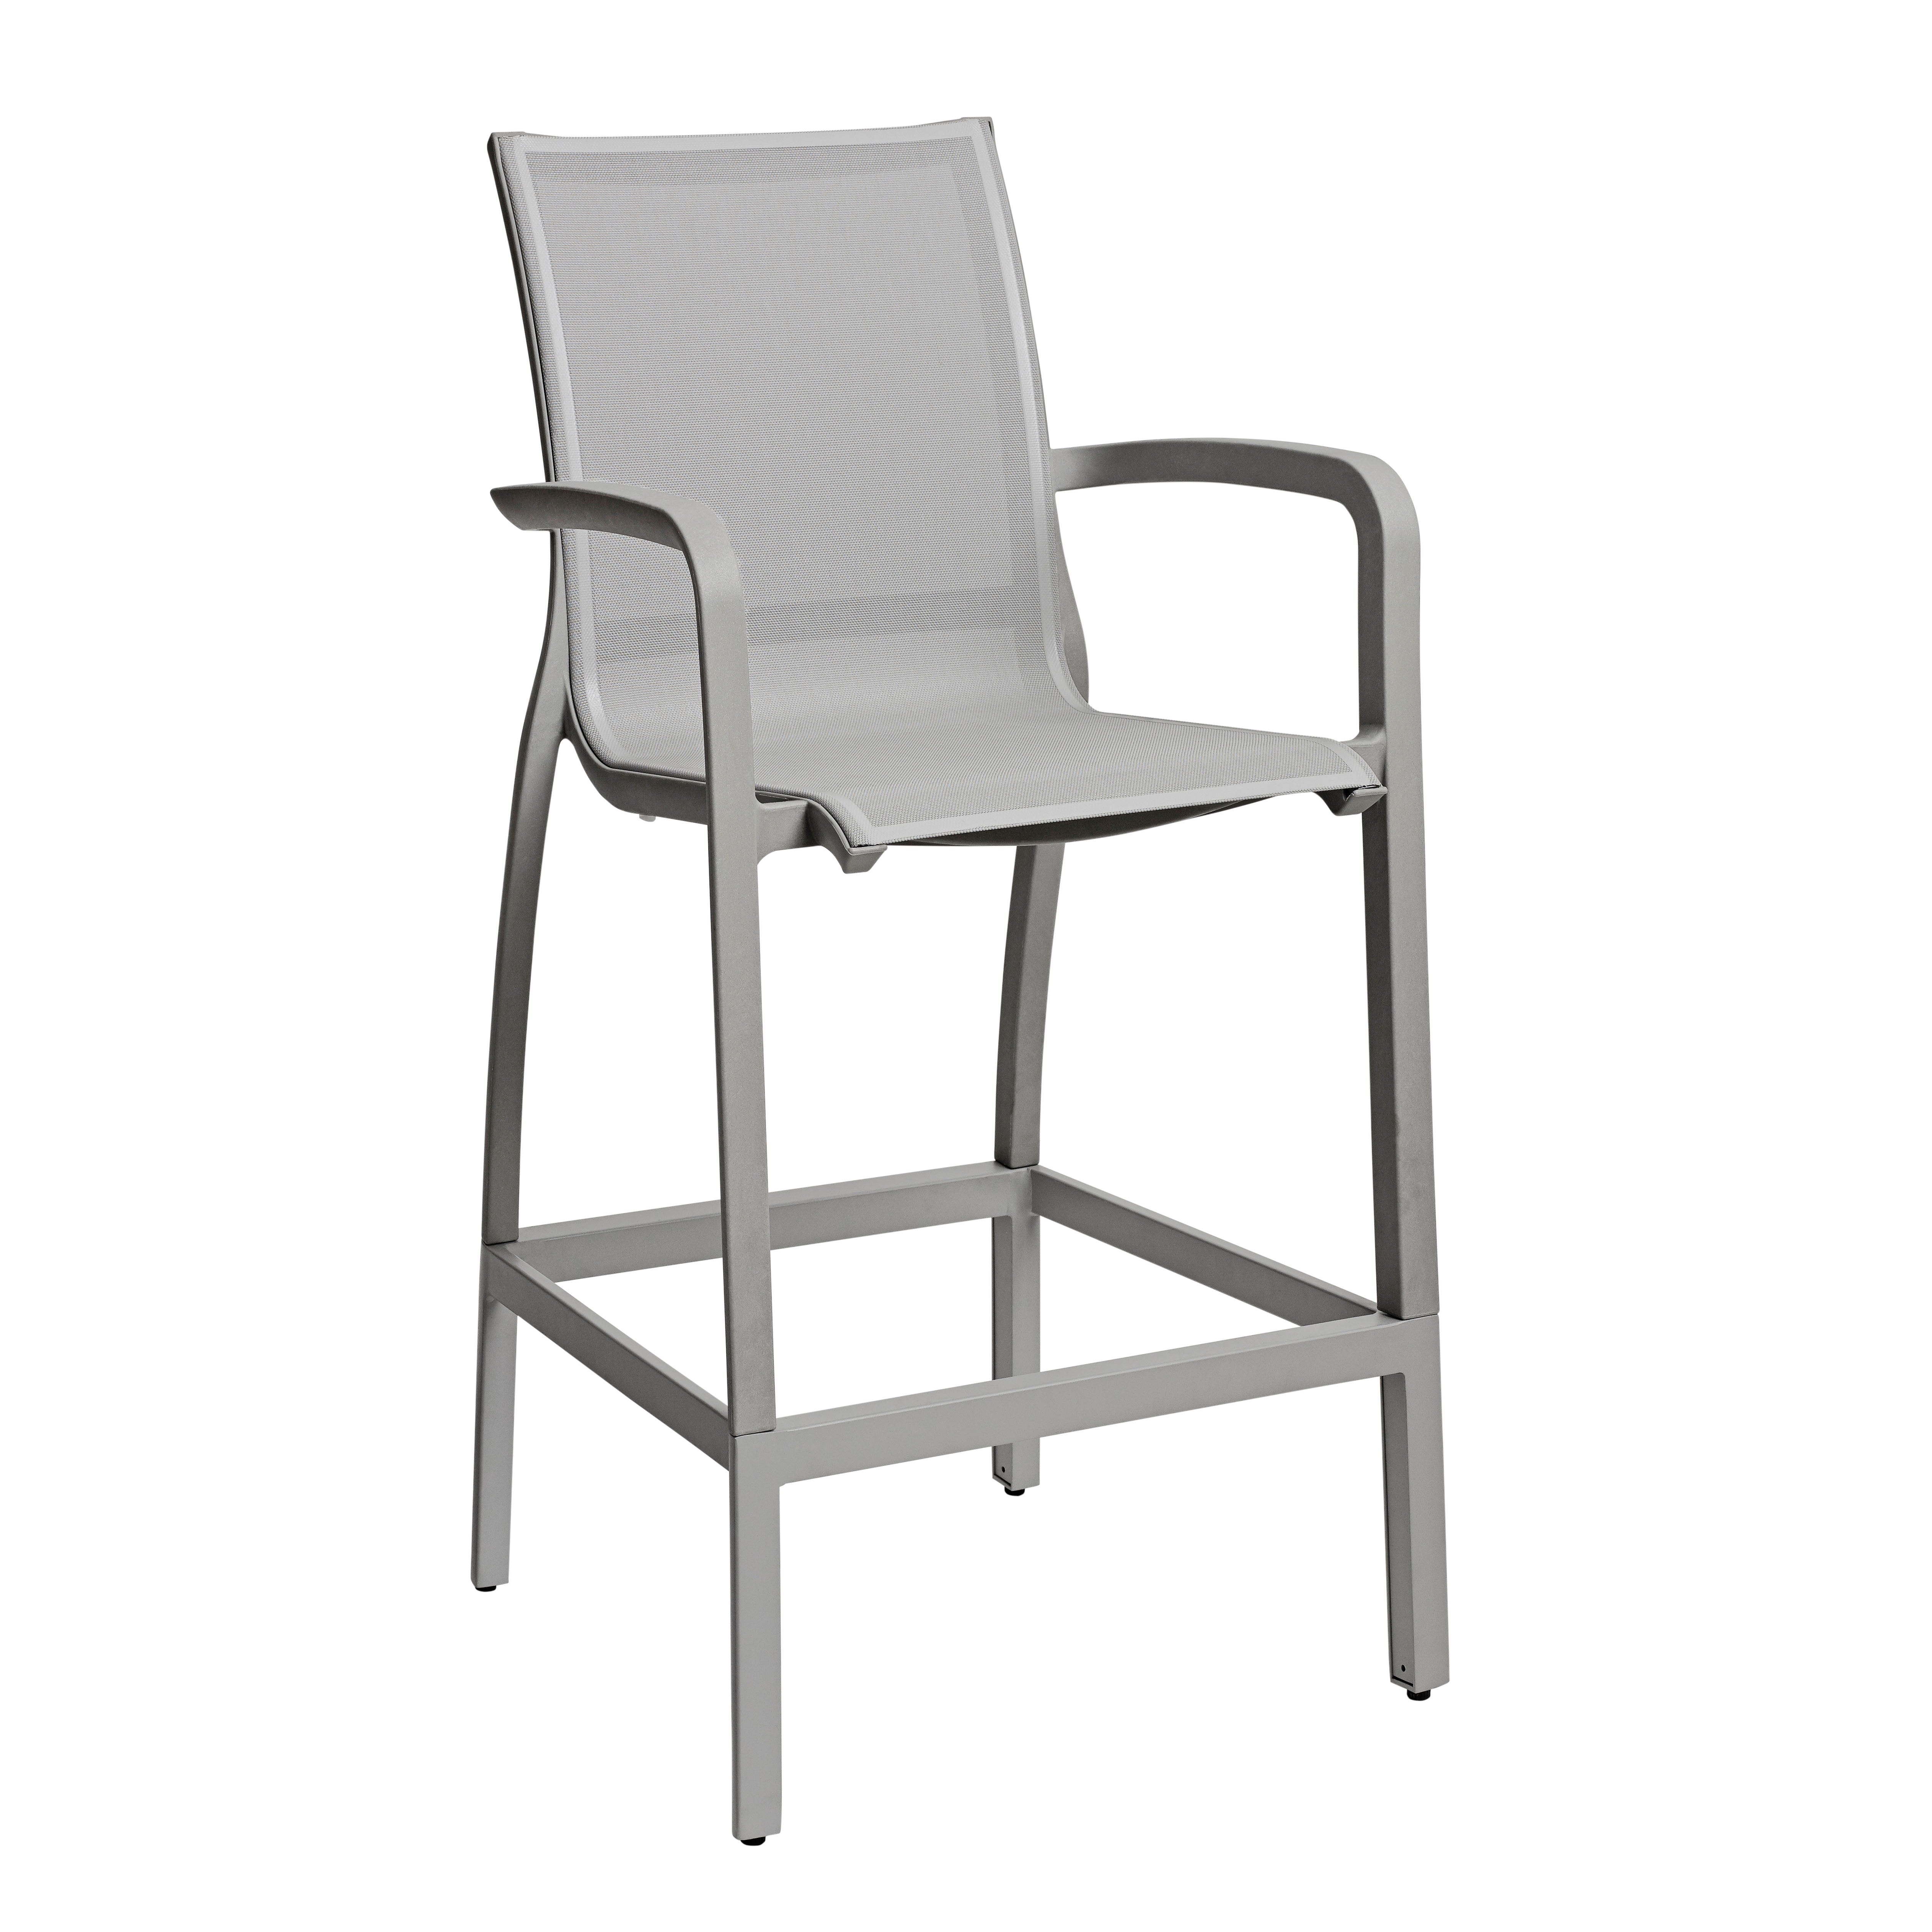 Grosfillex US469289 bar stool, outdoor